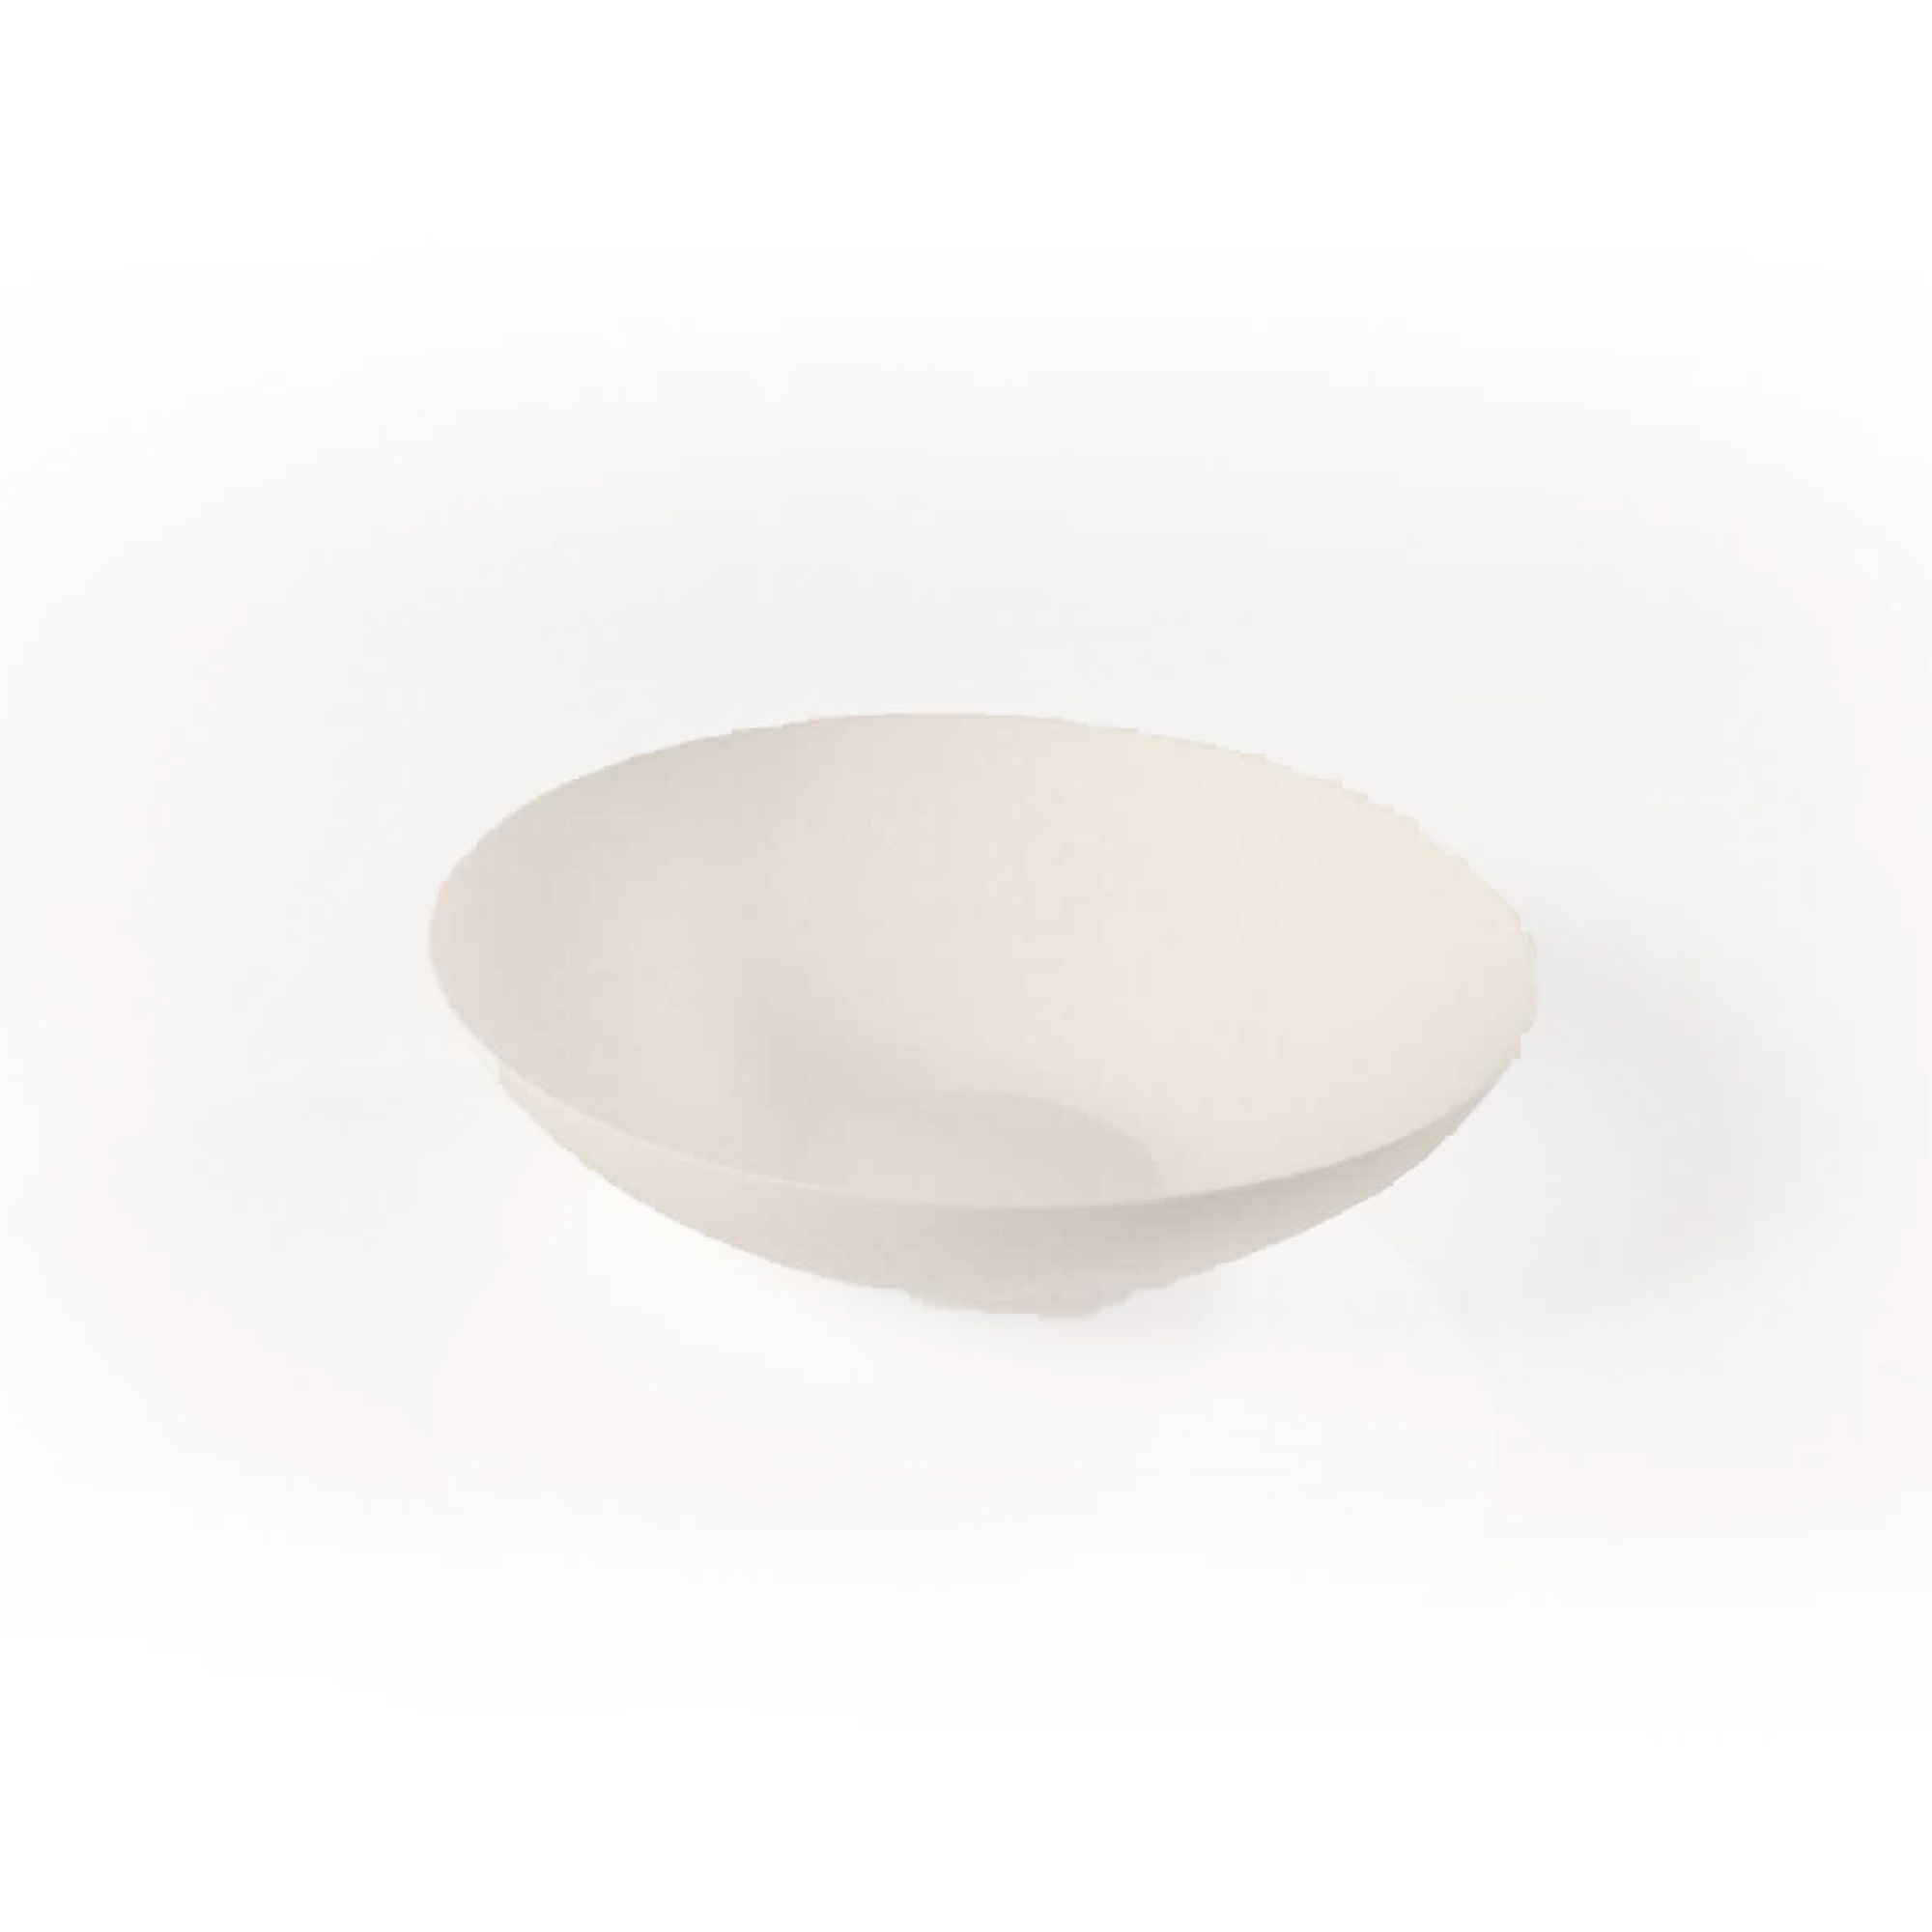 5010525_20 Bagastro bord diep rond Ø200xh49mm 20st